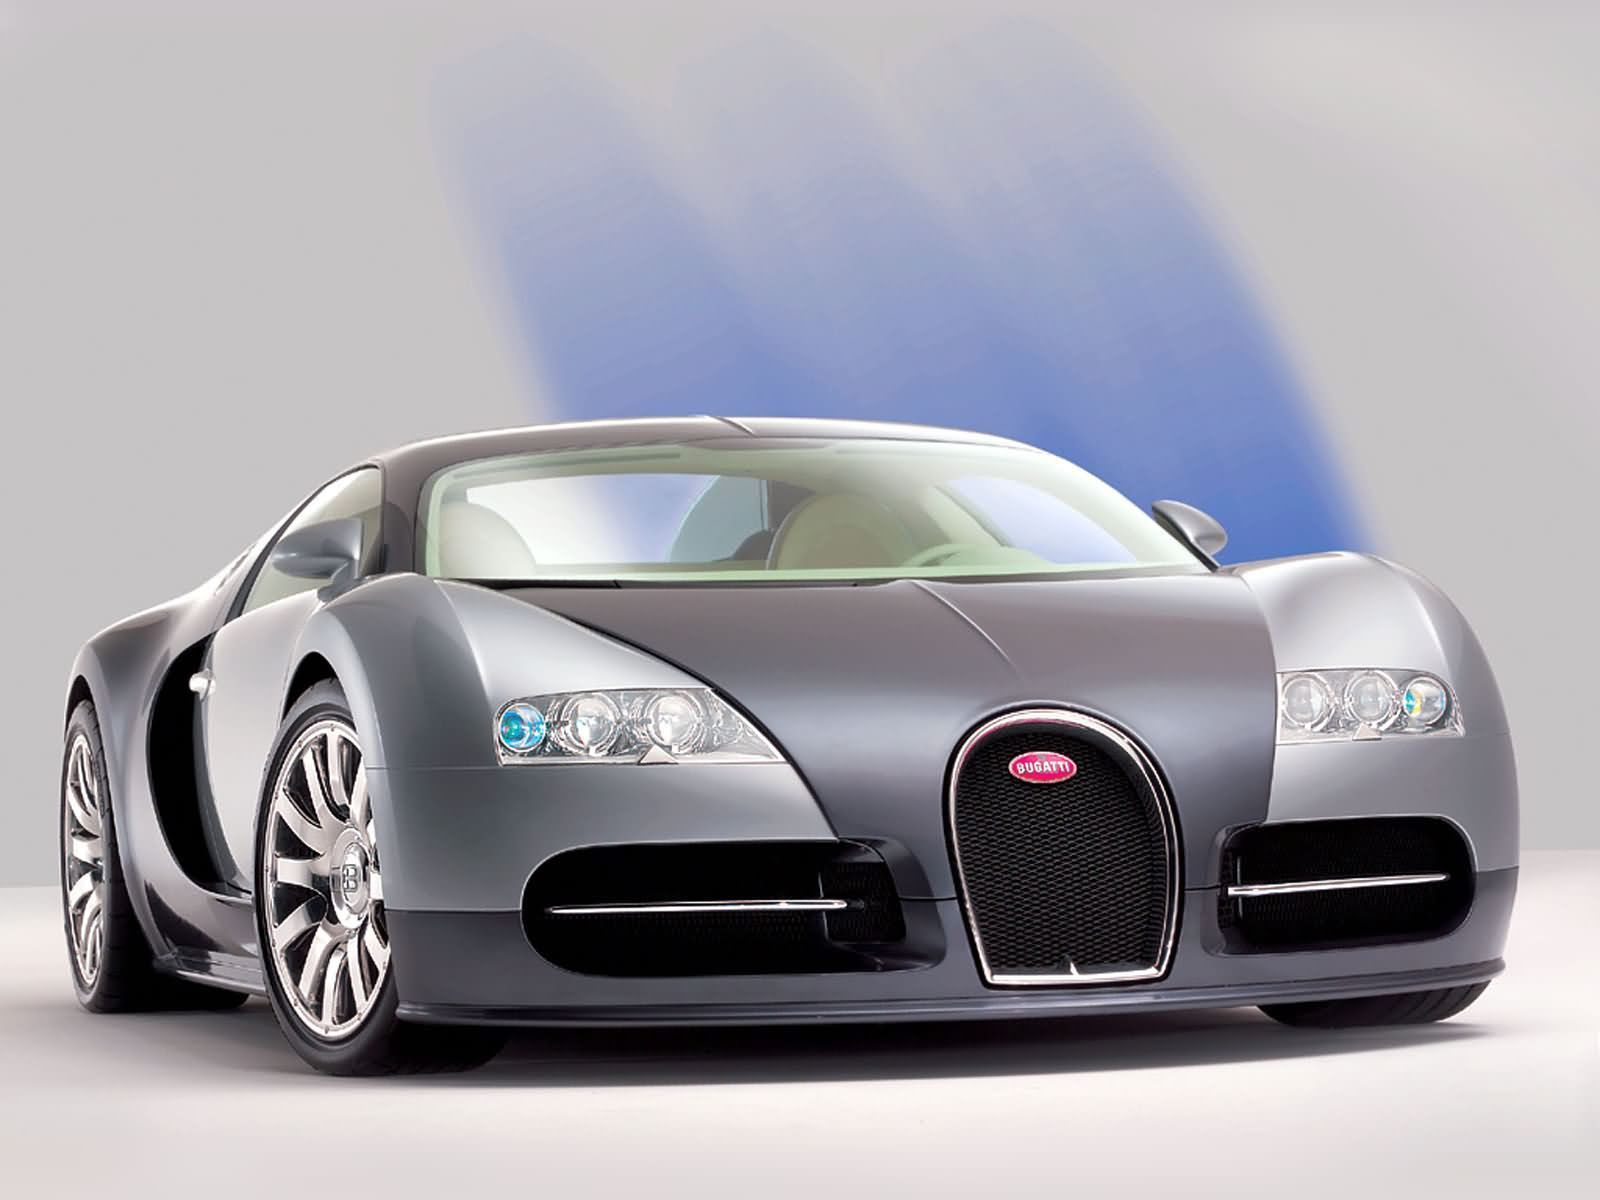 Bugatti on pictures hd wallpapers on atti cars wallpapers car bugatti veyron wallpapers hd desktop and mobile backgrounds voltagebd Choice Image